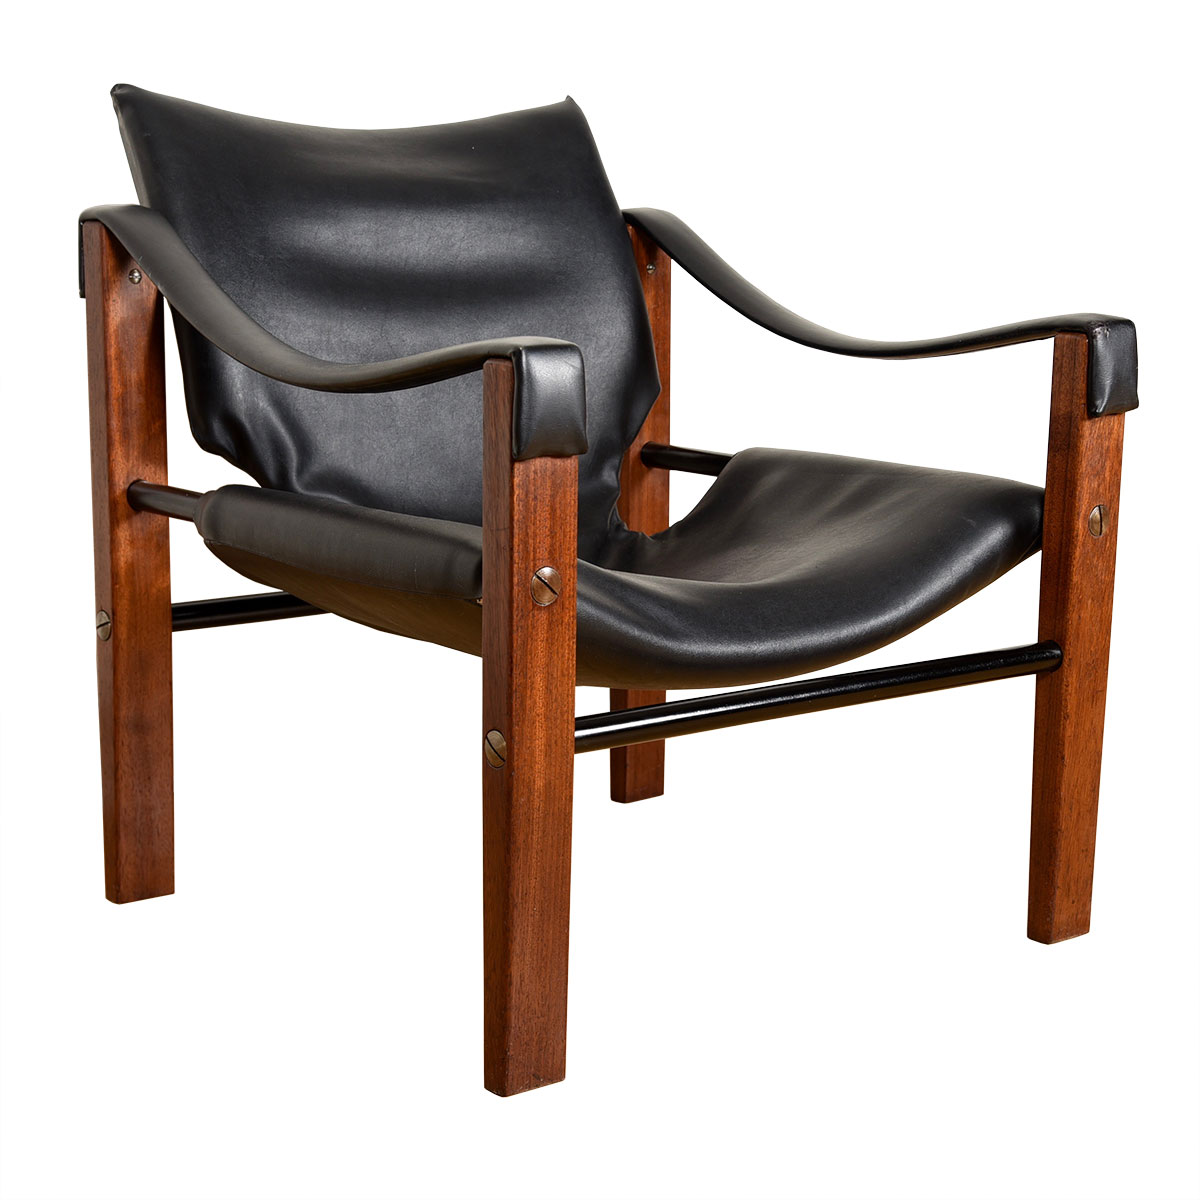 Danish Rosewood & Black Leather Upholstered Lounge Chair